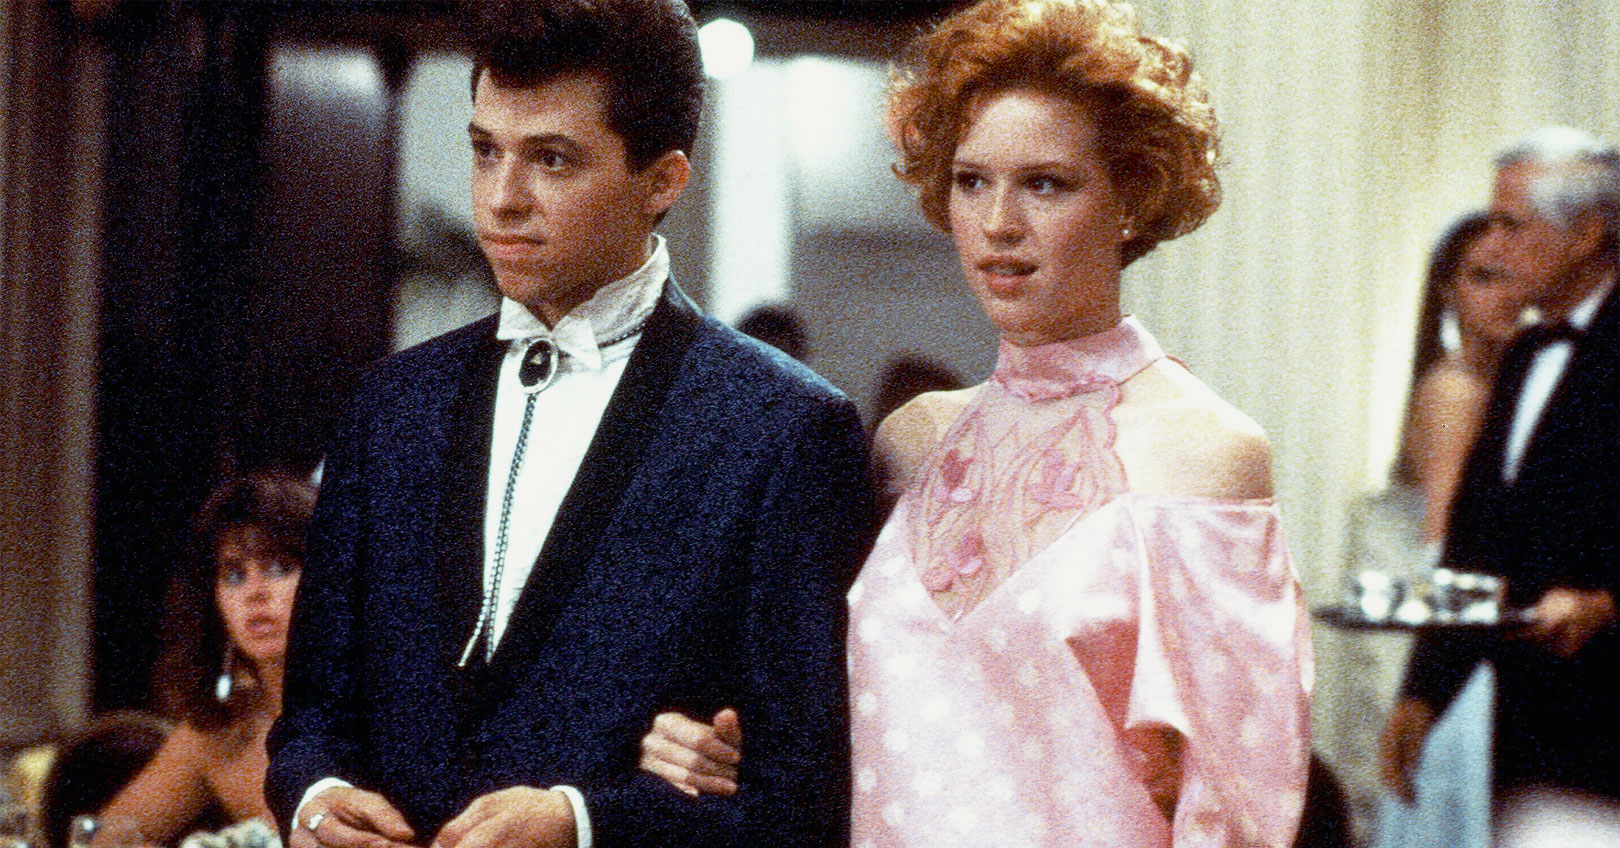 Pretty in Pink - Jon Cryer and Molly Ringwald